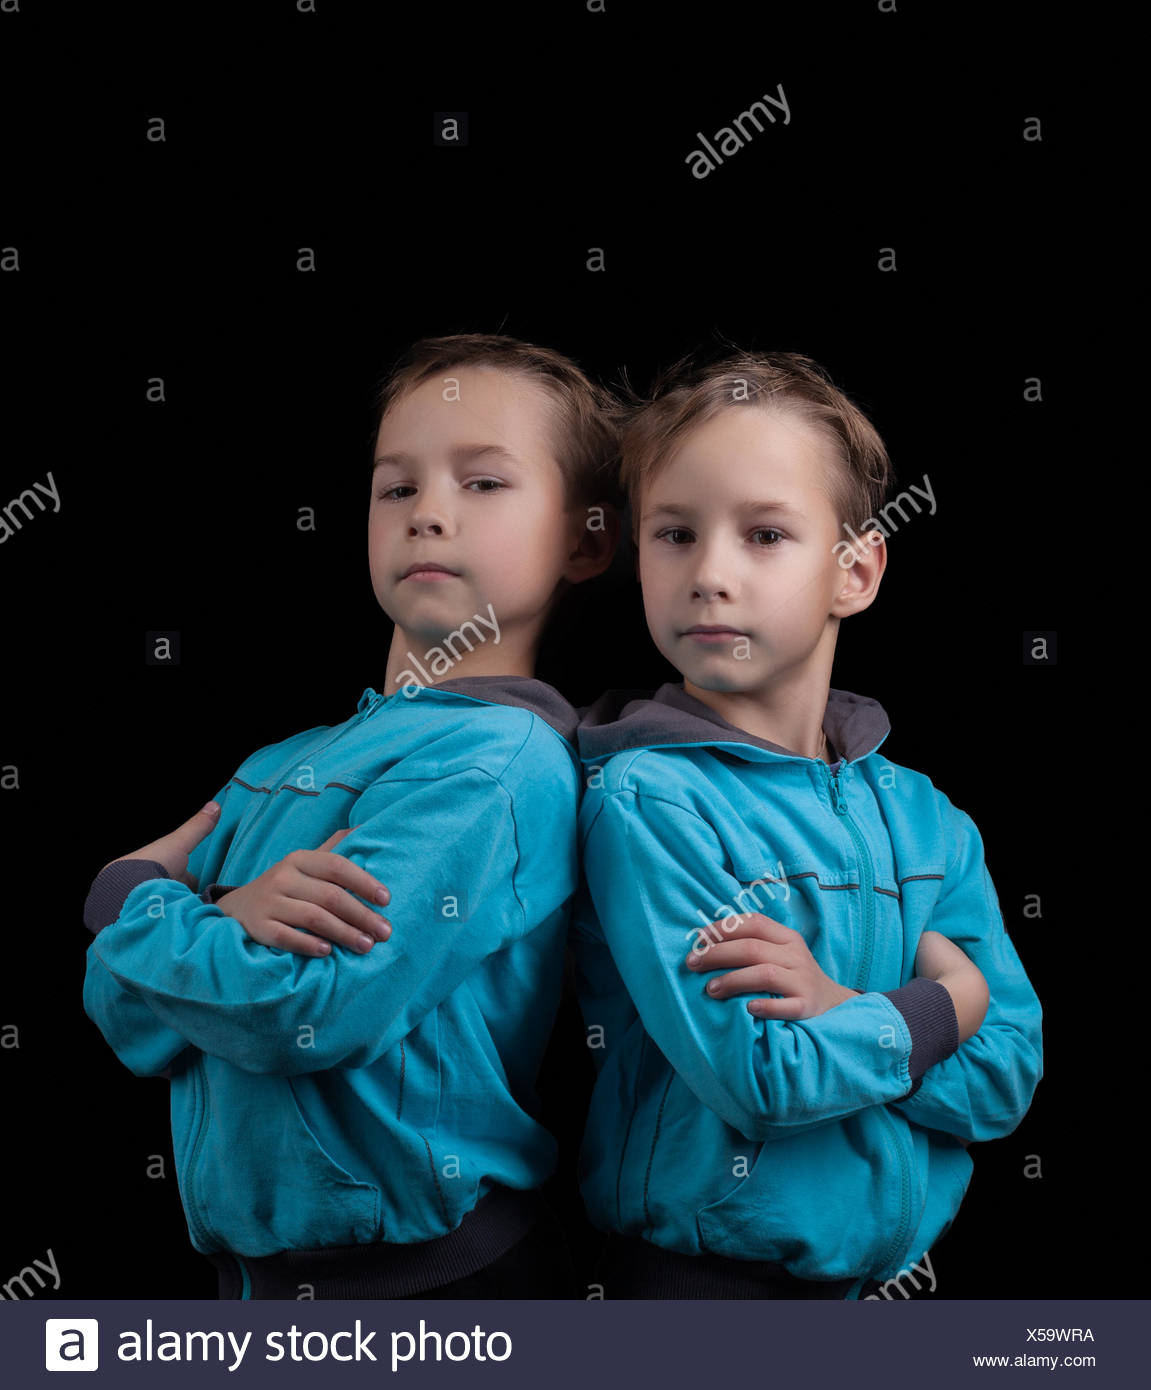 Portrait of adorable twin boys isolated on black